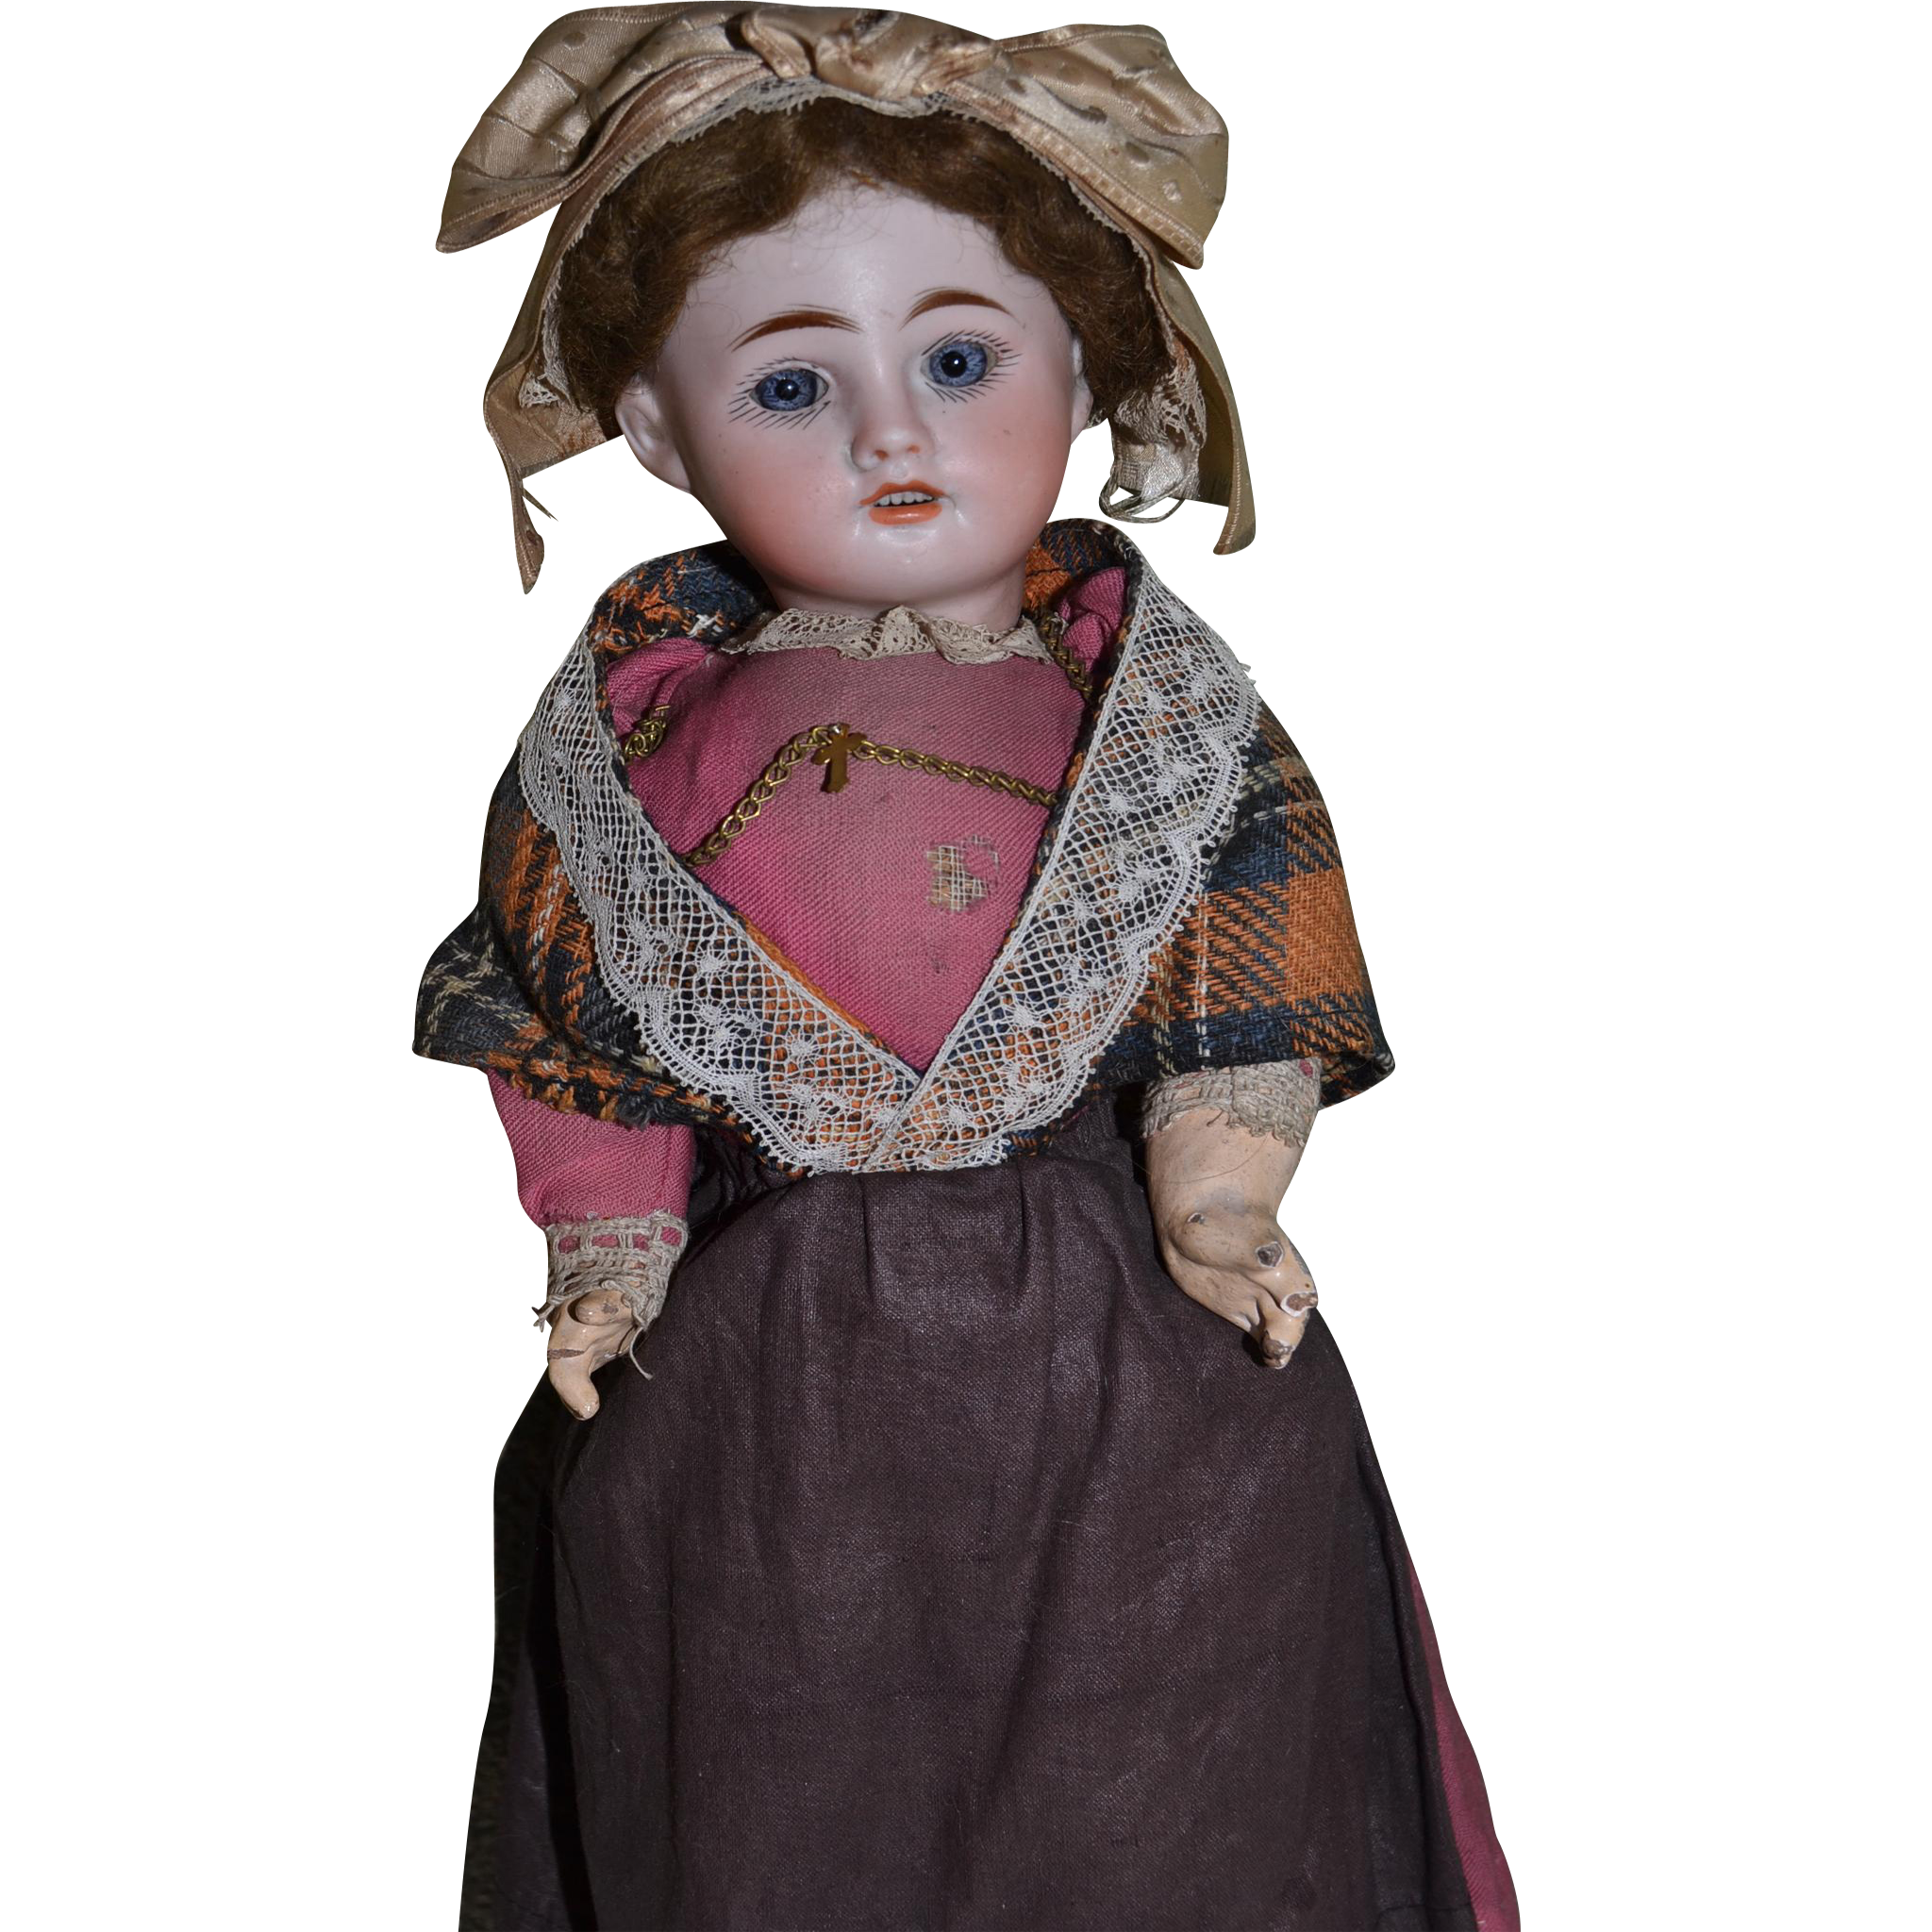 French charming auvergne doll all original